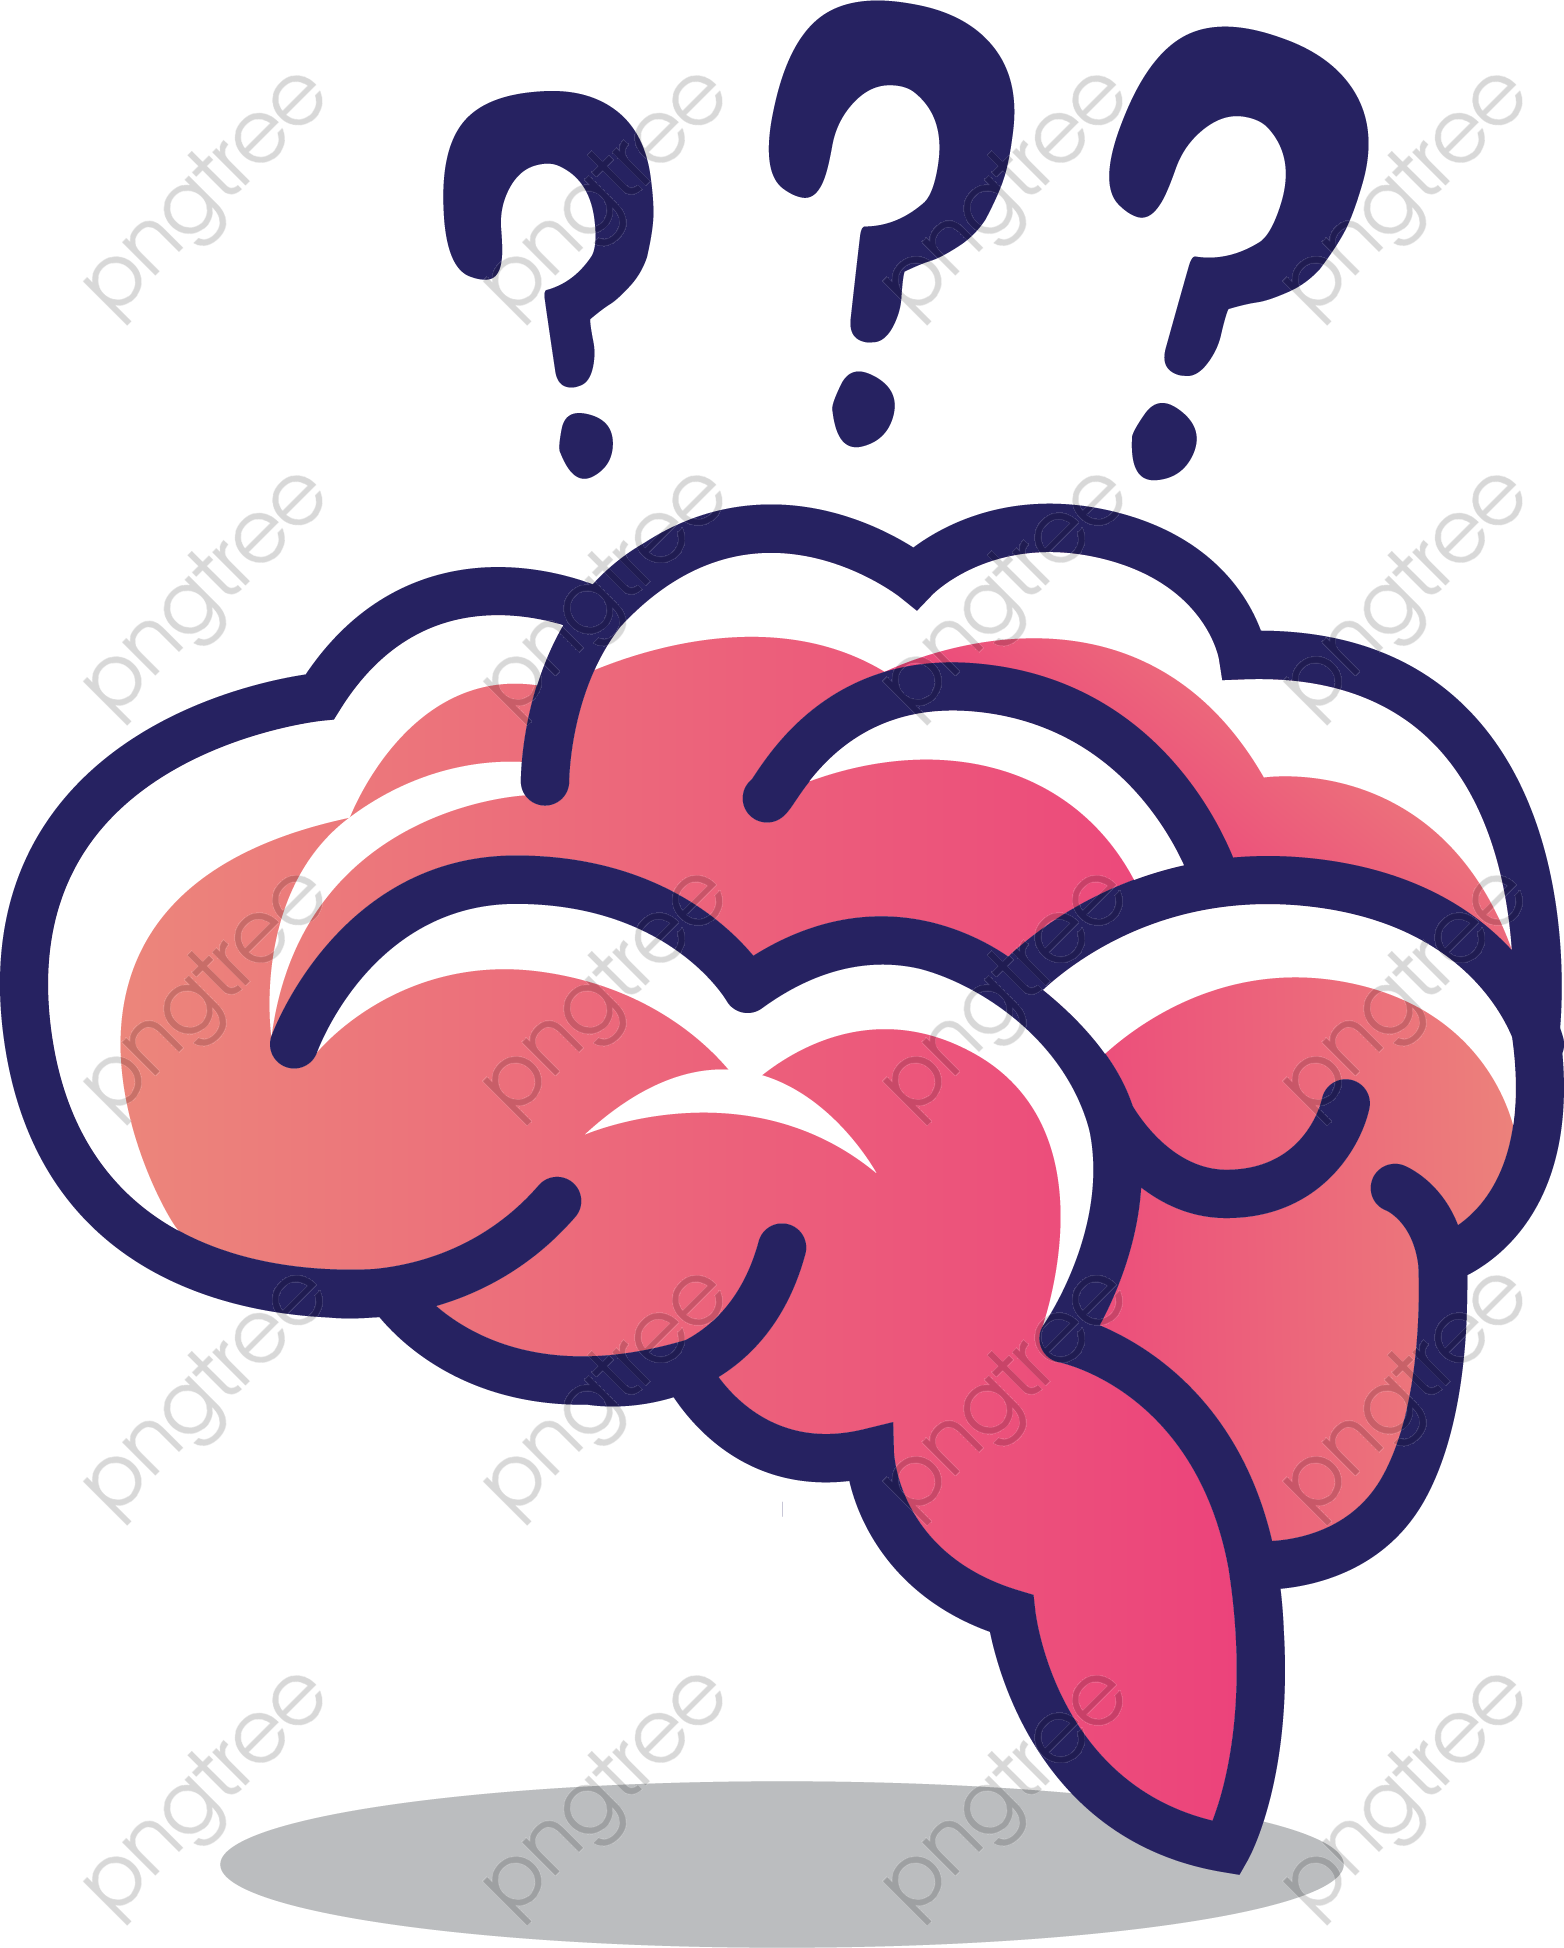 Transparent brain thinking PNG Format Image With Size 1564*1948.